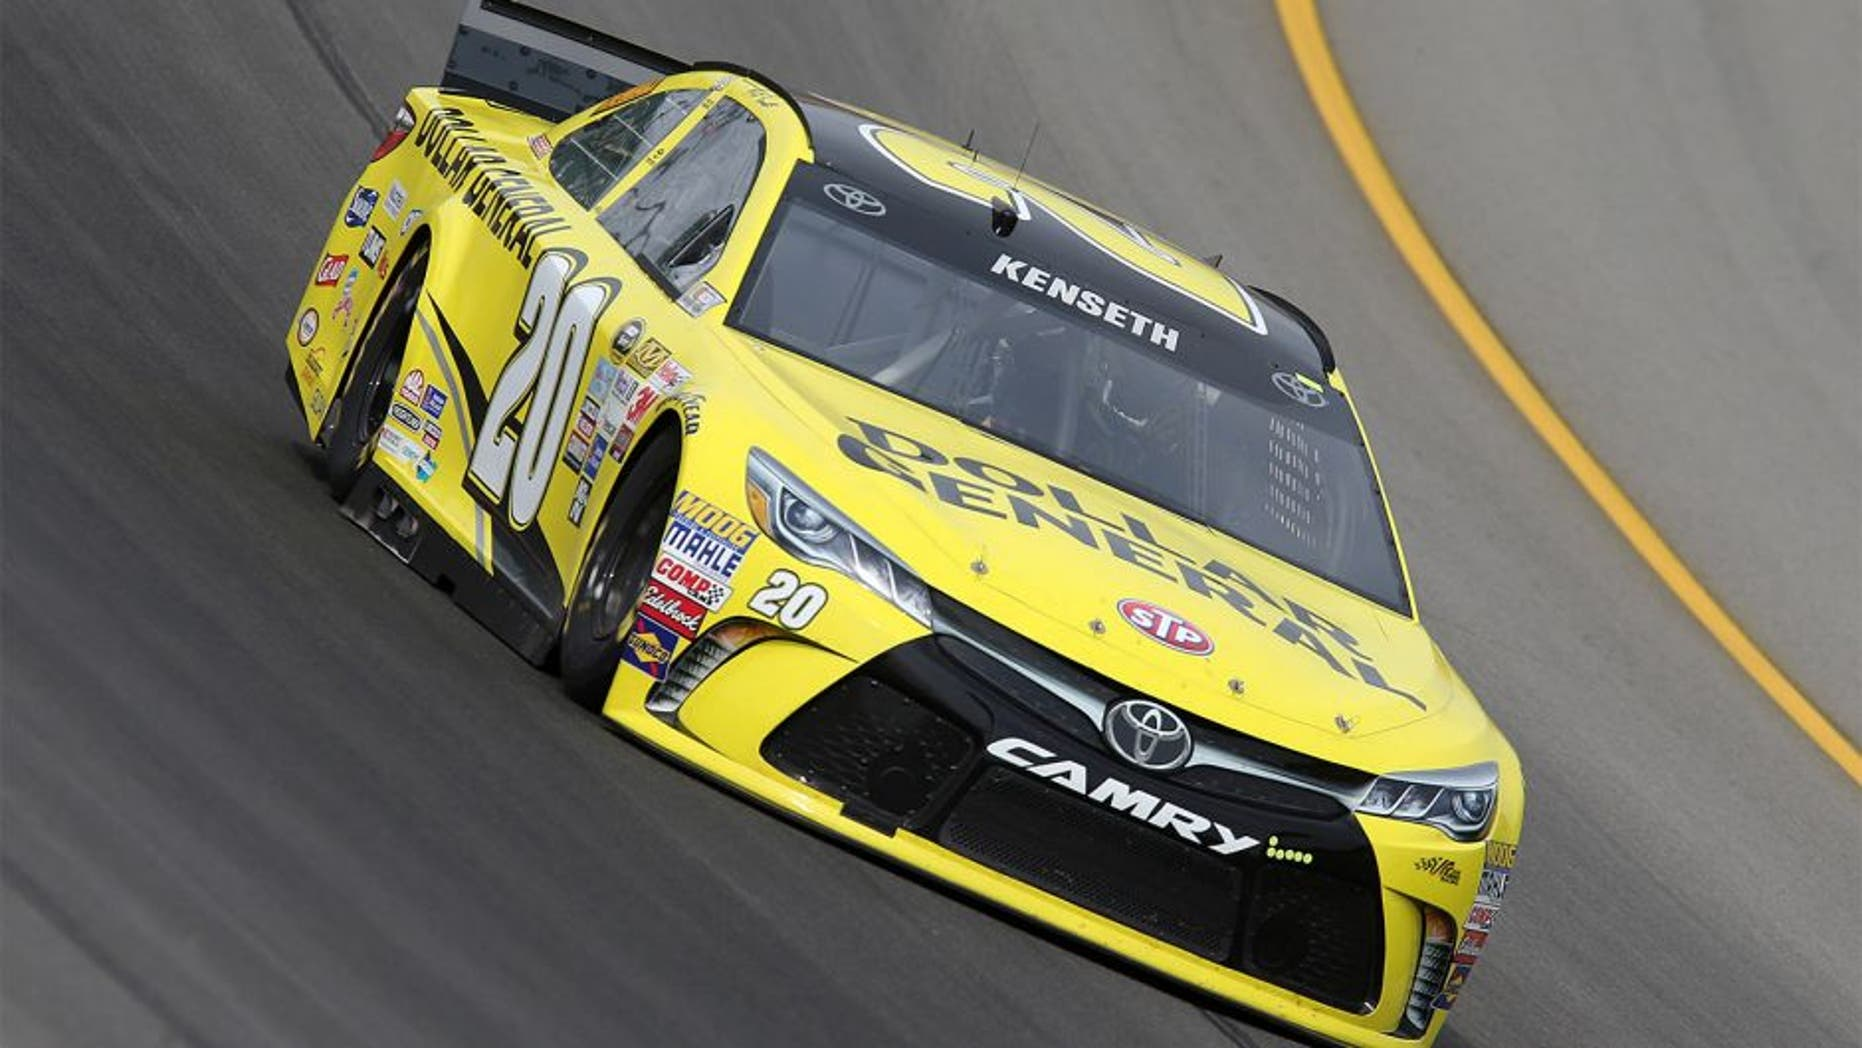 BROOKLYN, MI - AUGUST 14: Matt Kenseth drives the #20 Dollar General Toyota during practice for the NASCAR Sprint Cup Series Pure Michigan 400 at Michigan International Speedway on August 14, 2015 in Brooklyn, Michigan. (Photo by Jerry Markland/Getty Images)